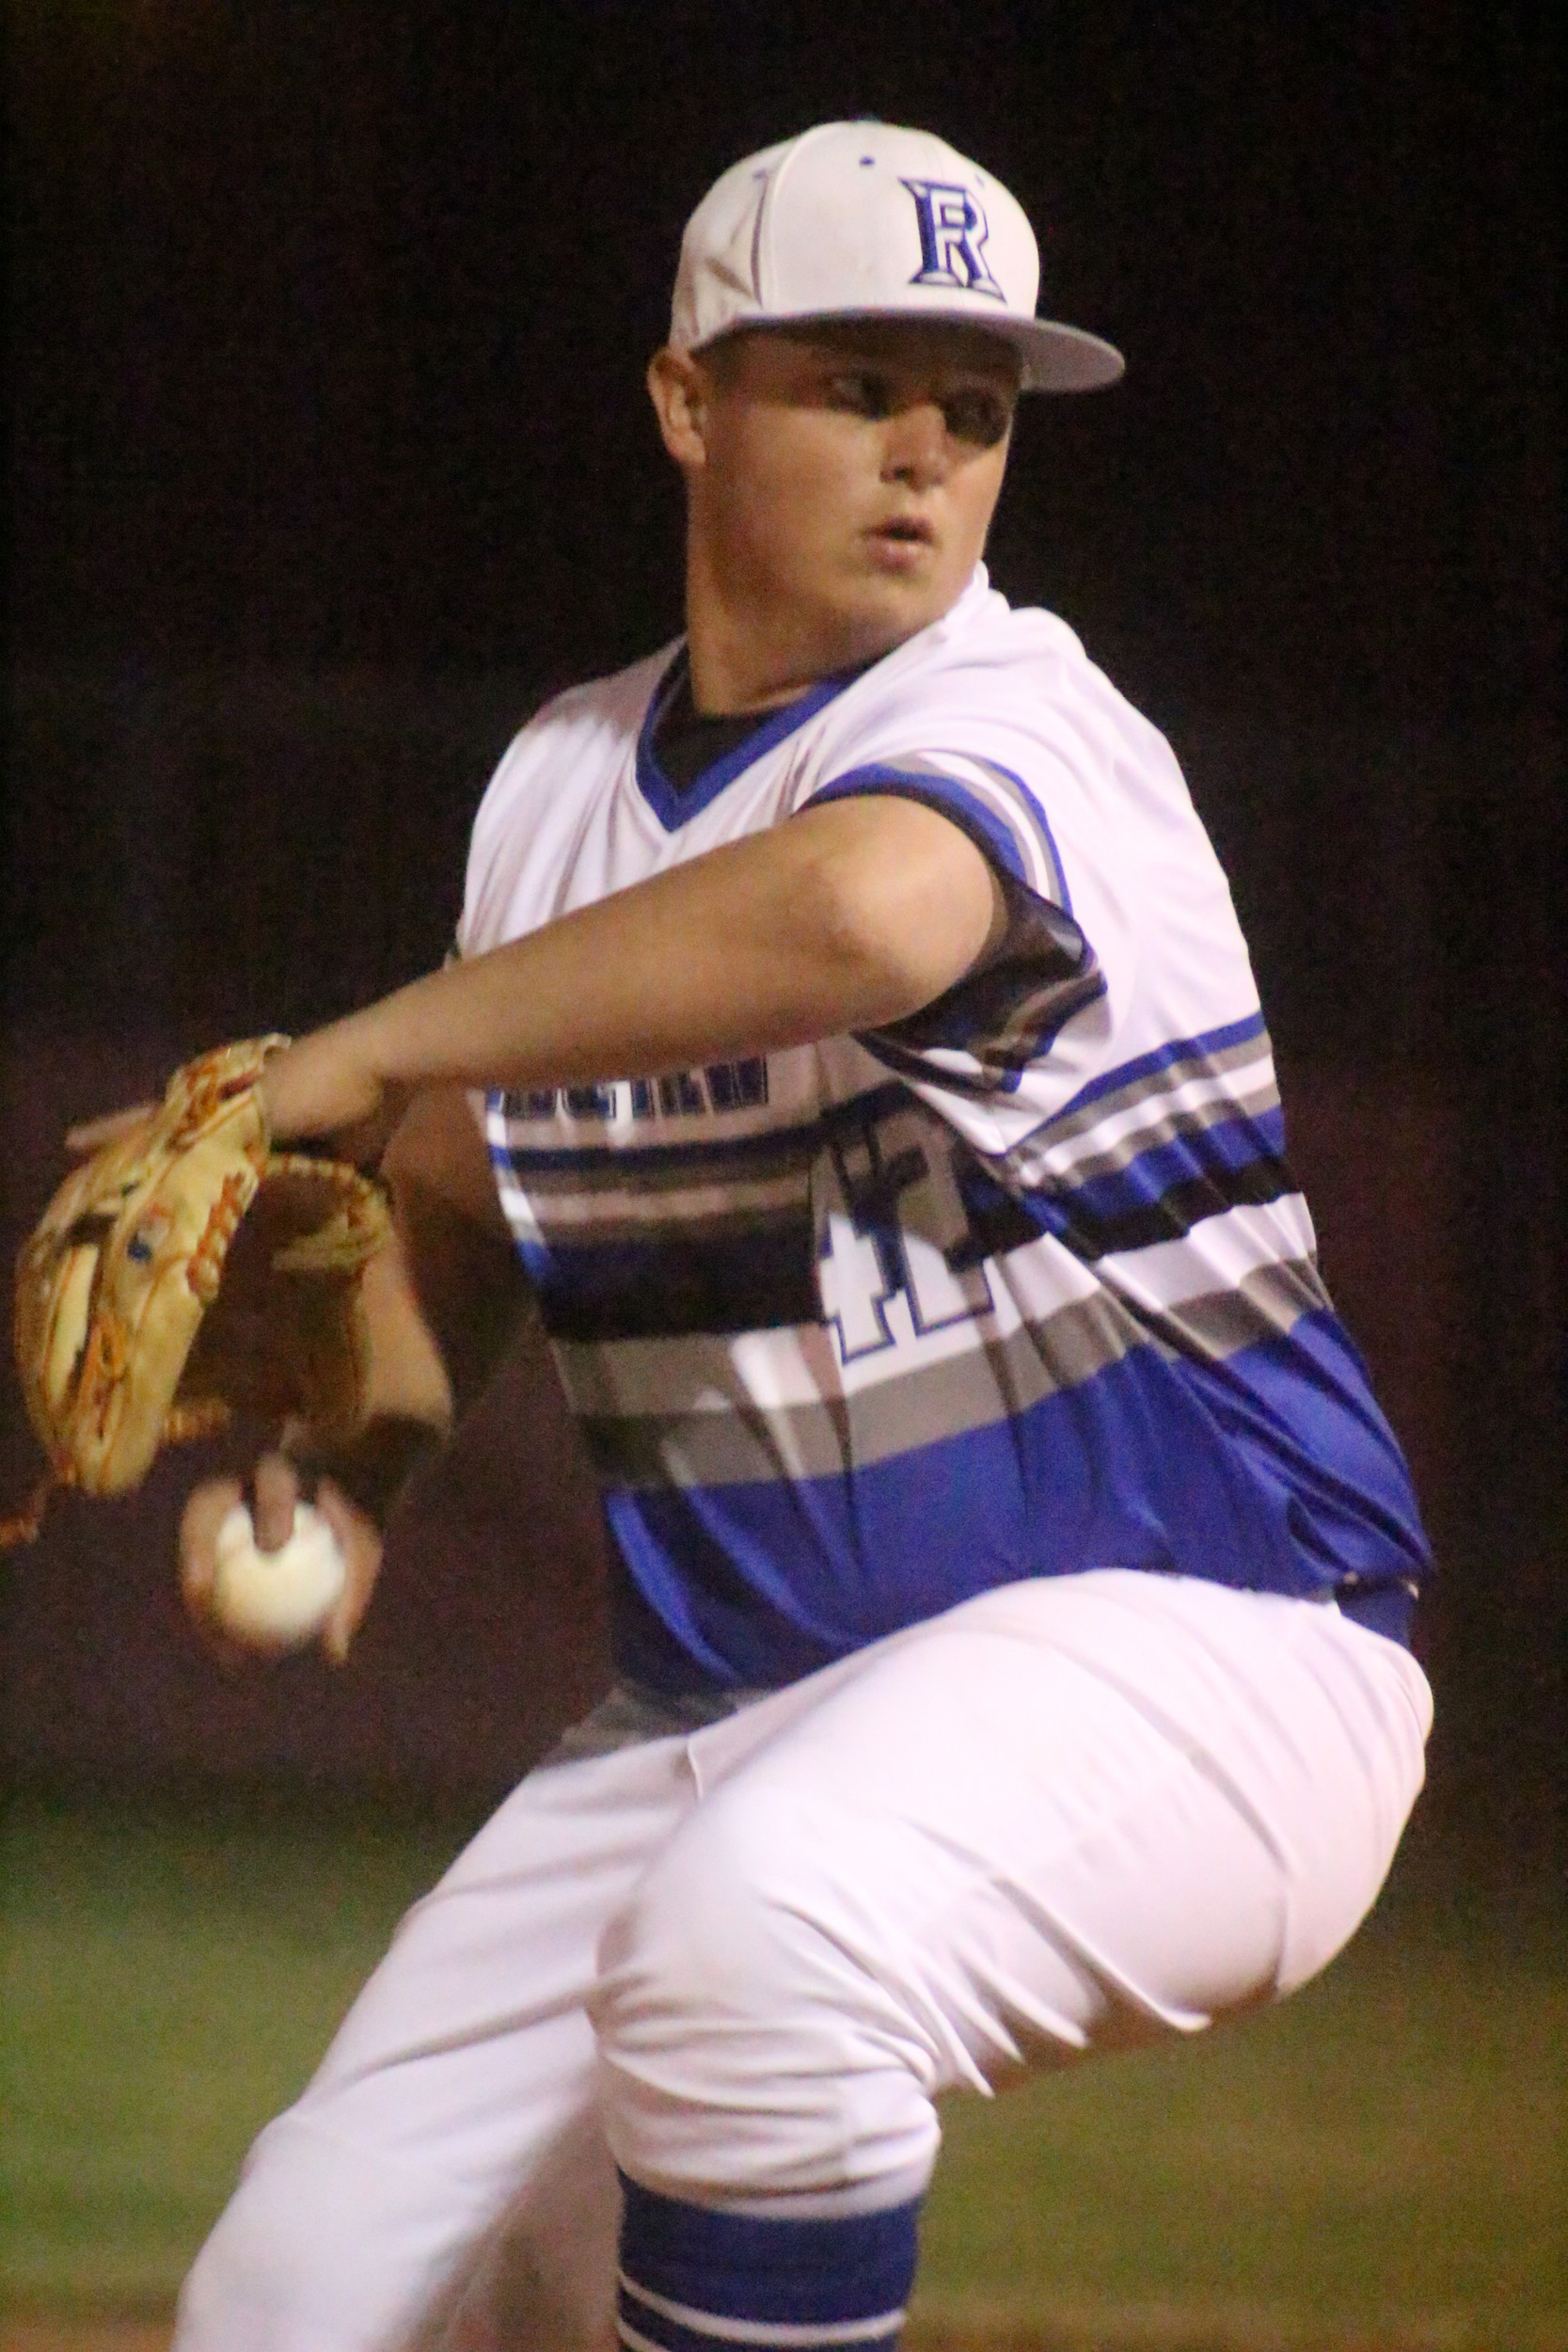 Ridgeview High pitcher Tyler Robison was powertosser in 11-strikeout night against Middleburg in 5-2 Panther win.